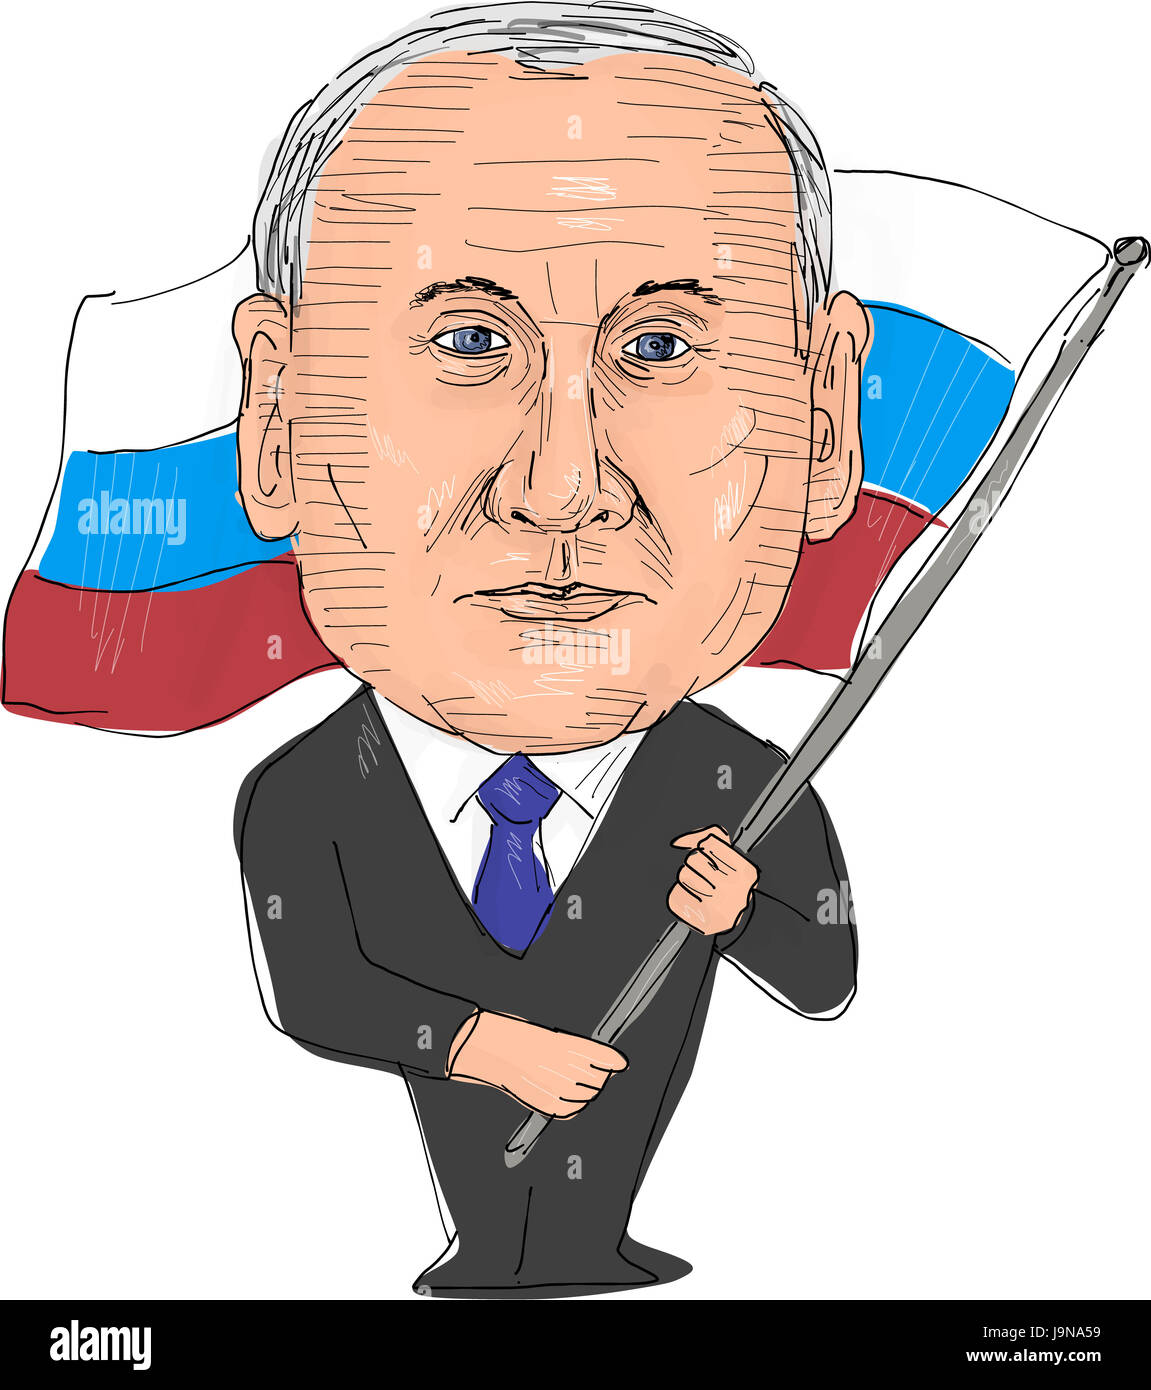 June 2, 2017: Watercolor style illustration of Vladimir Putin, President of Russia viewed from front set on isolated - Stock Image